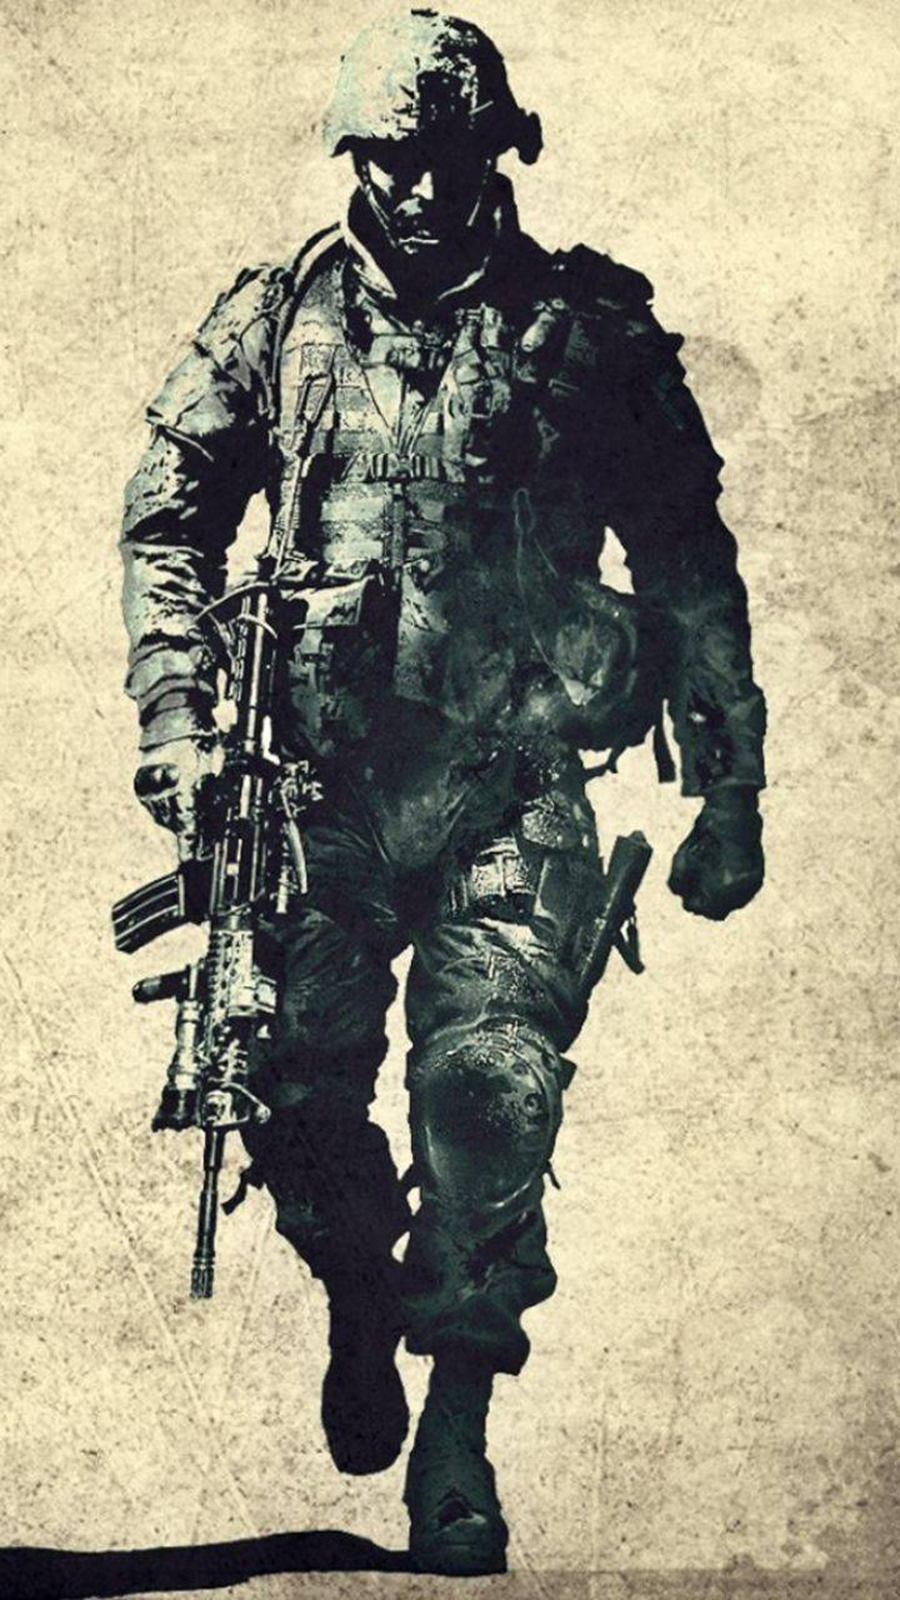 Ready for Combat Wallpapers Free Download For Your Device